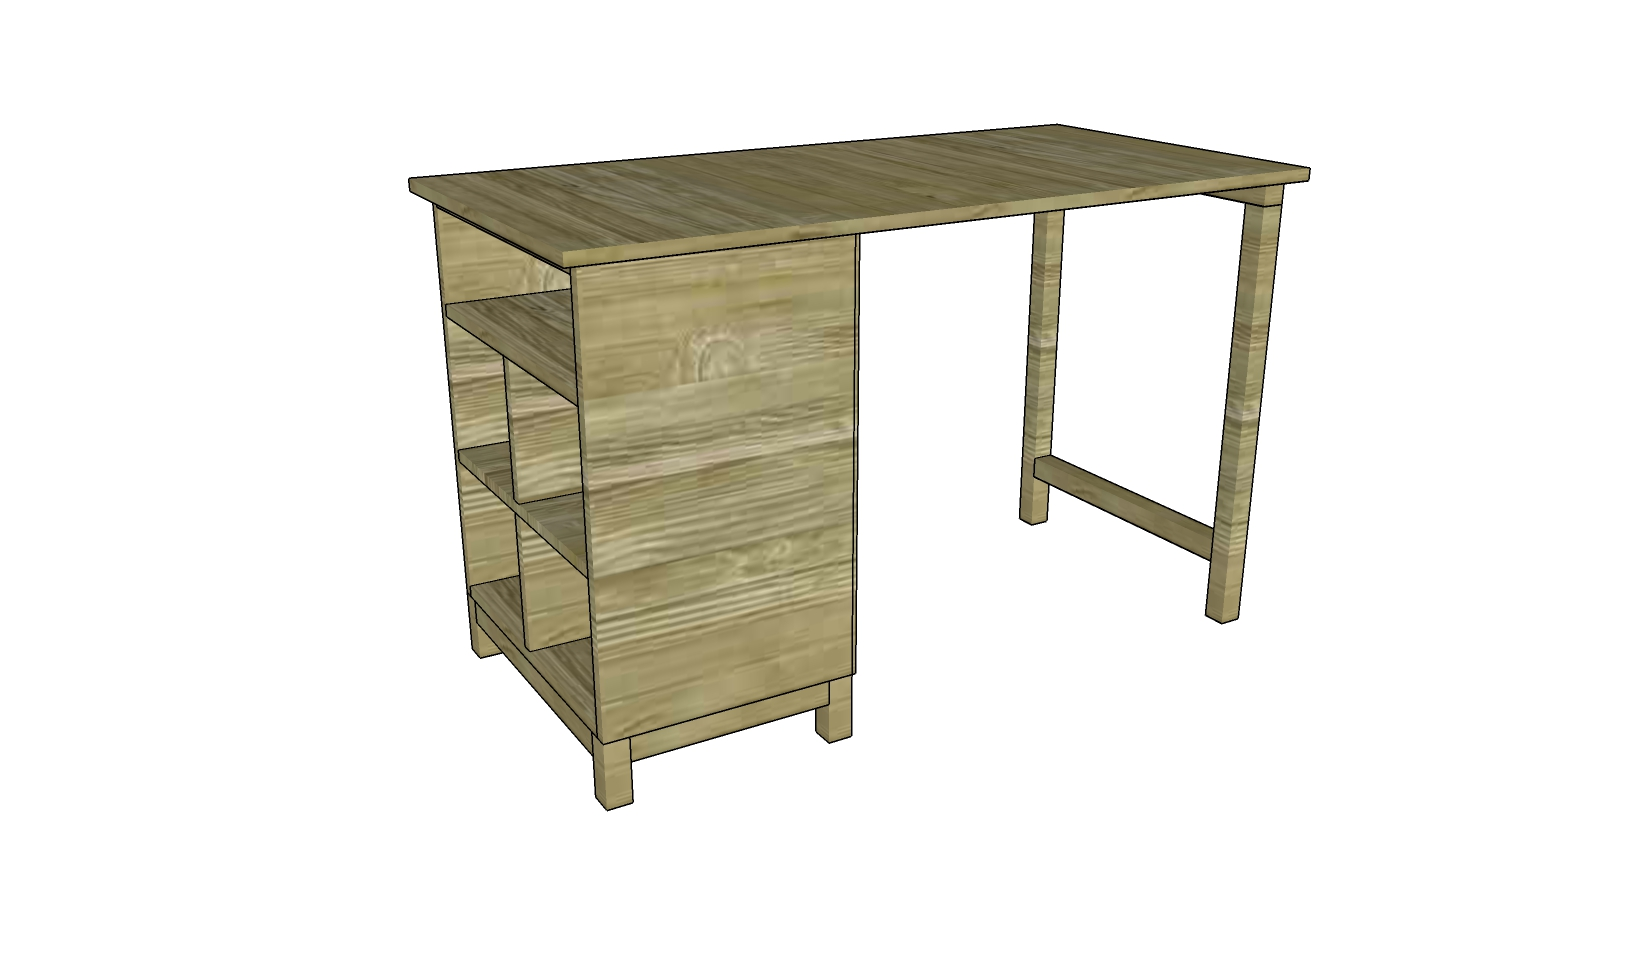 How to Build a Desk | Free Outdoor Plans - DIY Shed, Wooden Playhouse ...